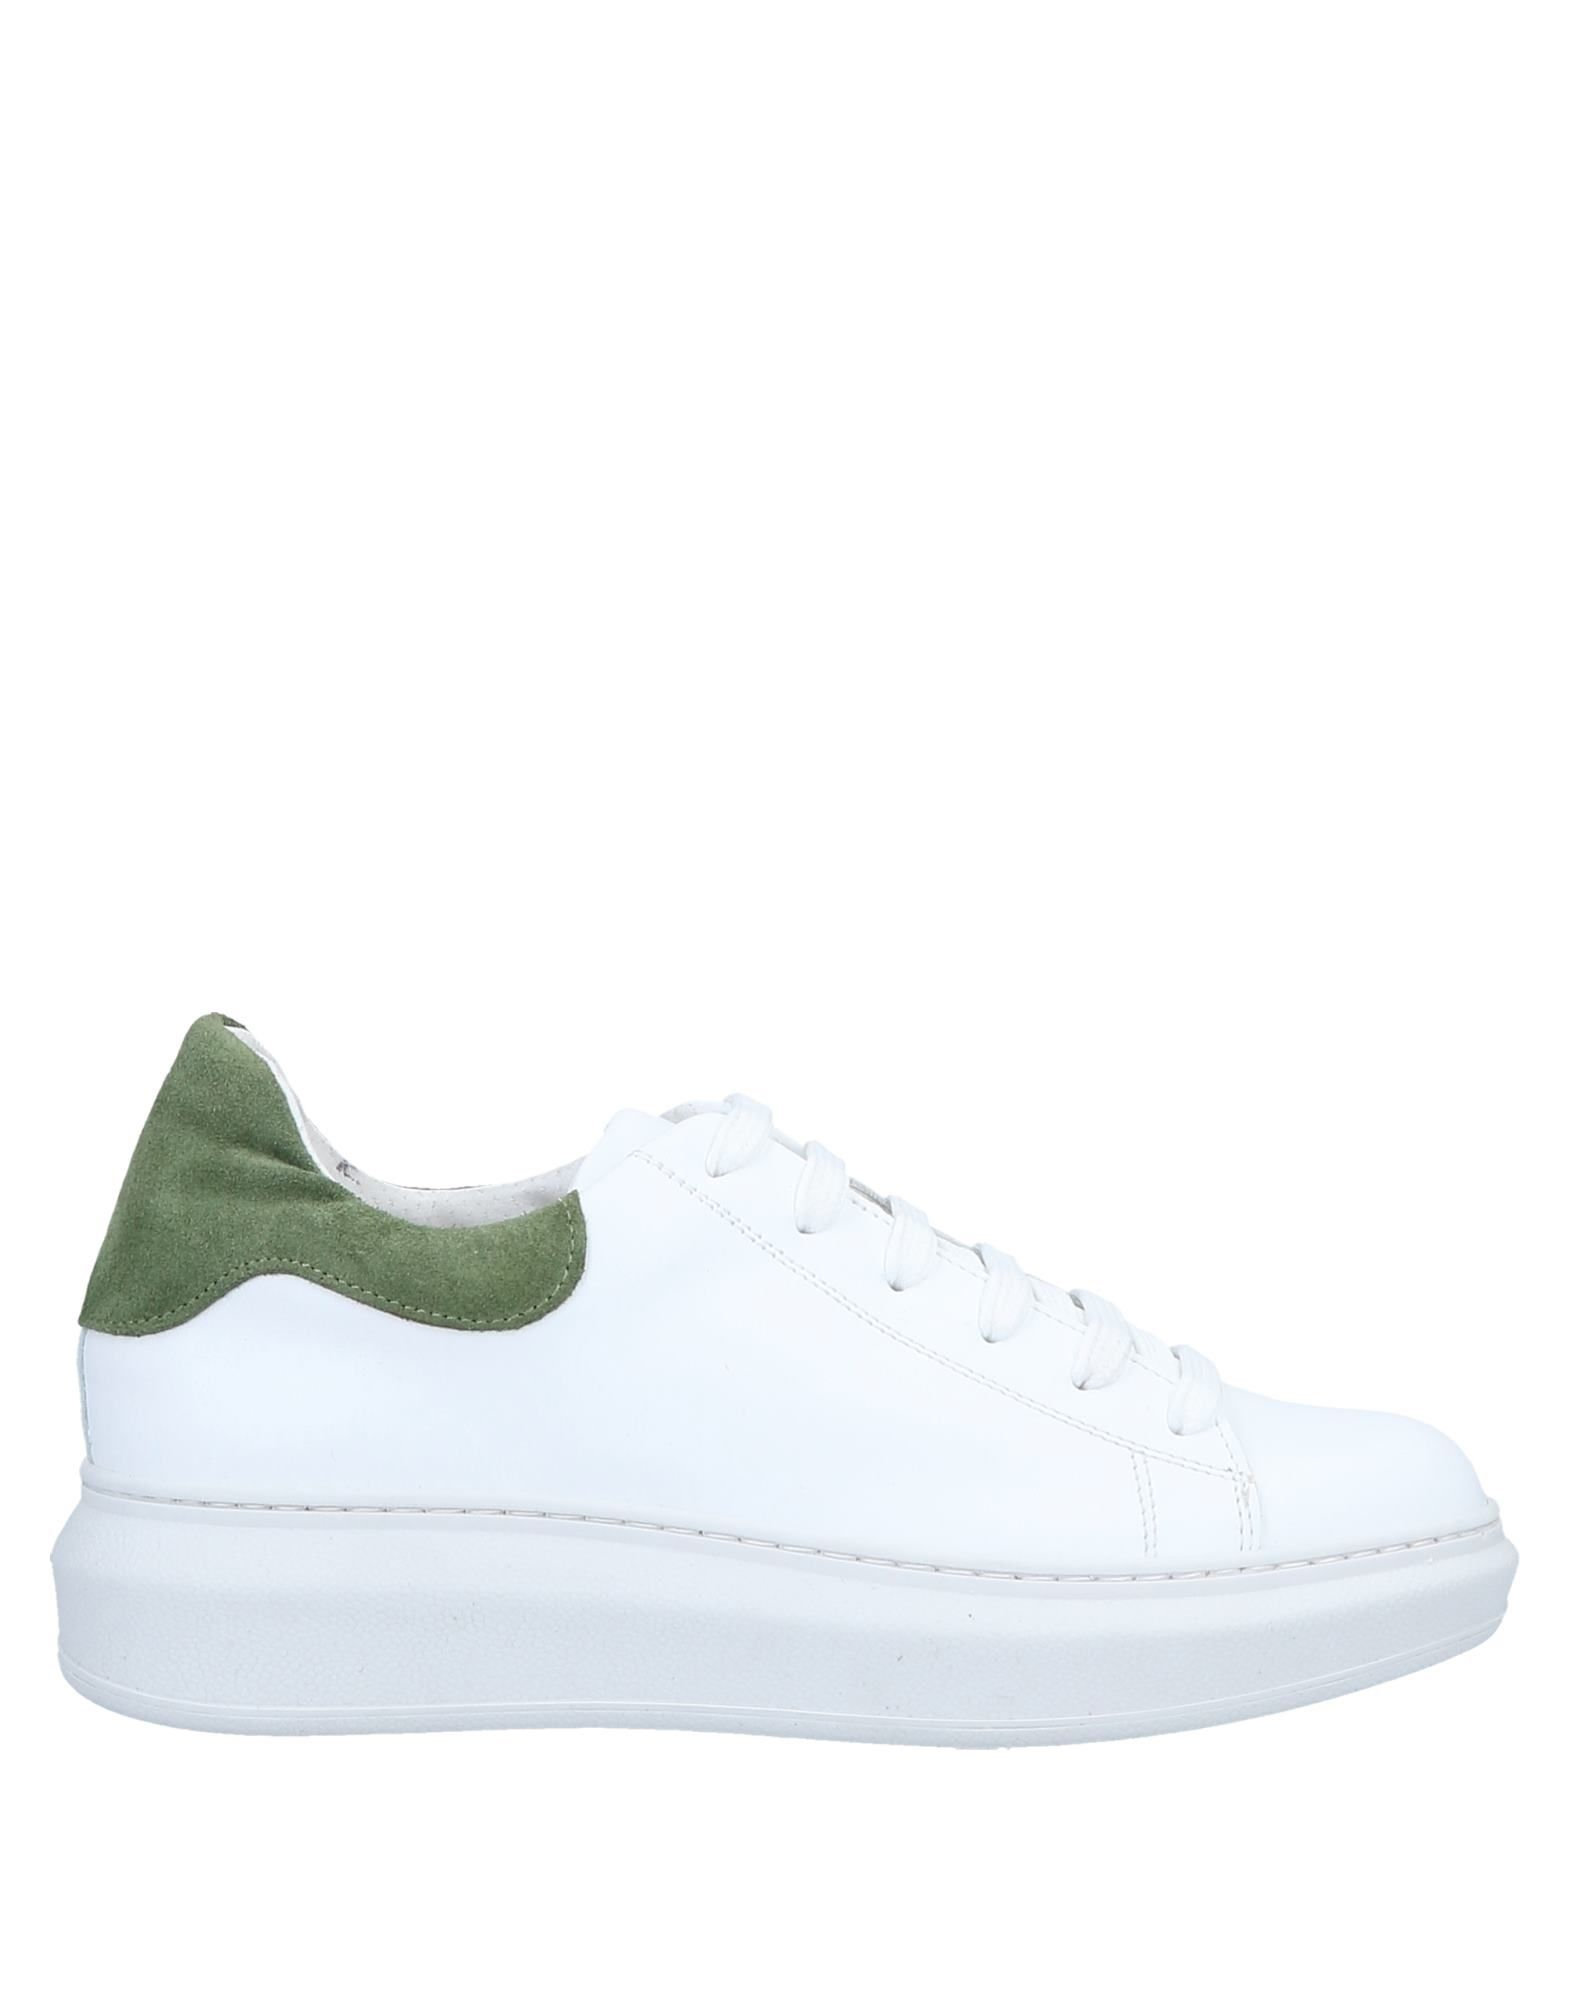 Tsd12 Sneakers online - Women Tsd12 Sneakers online Sneakers on  United Kingdom - 11567463HB 5841e2